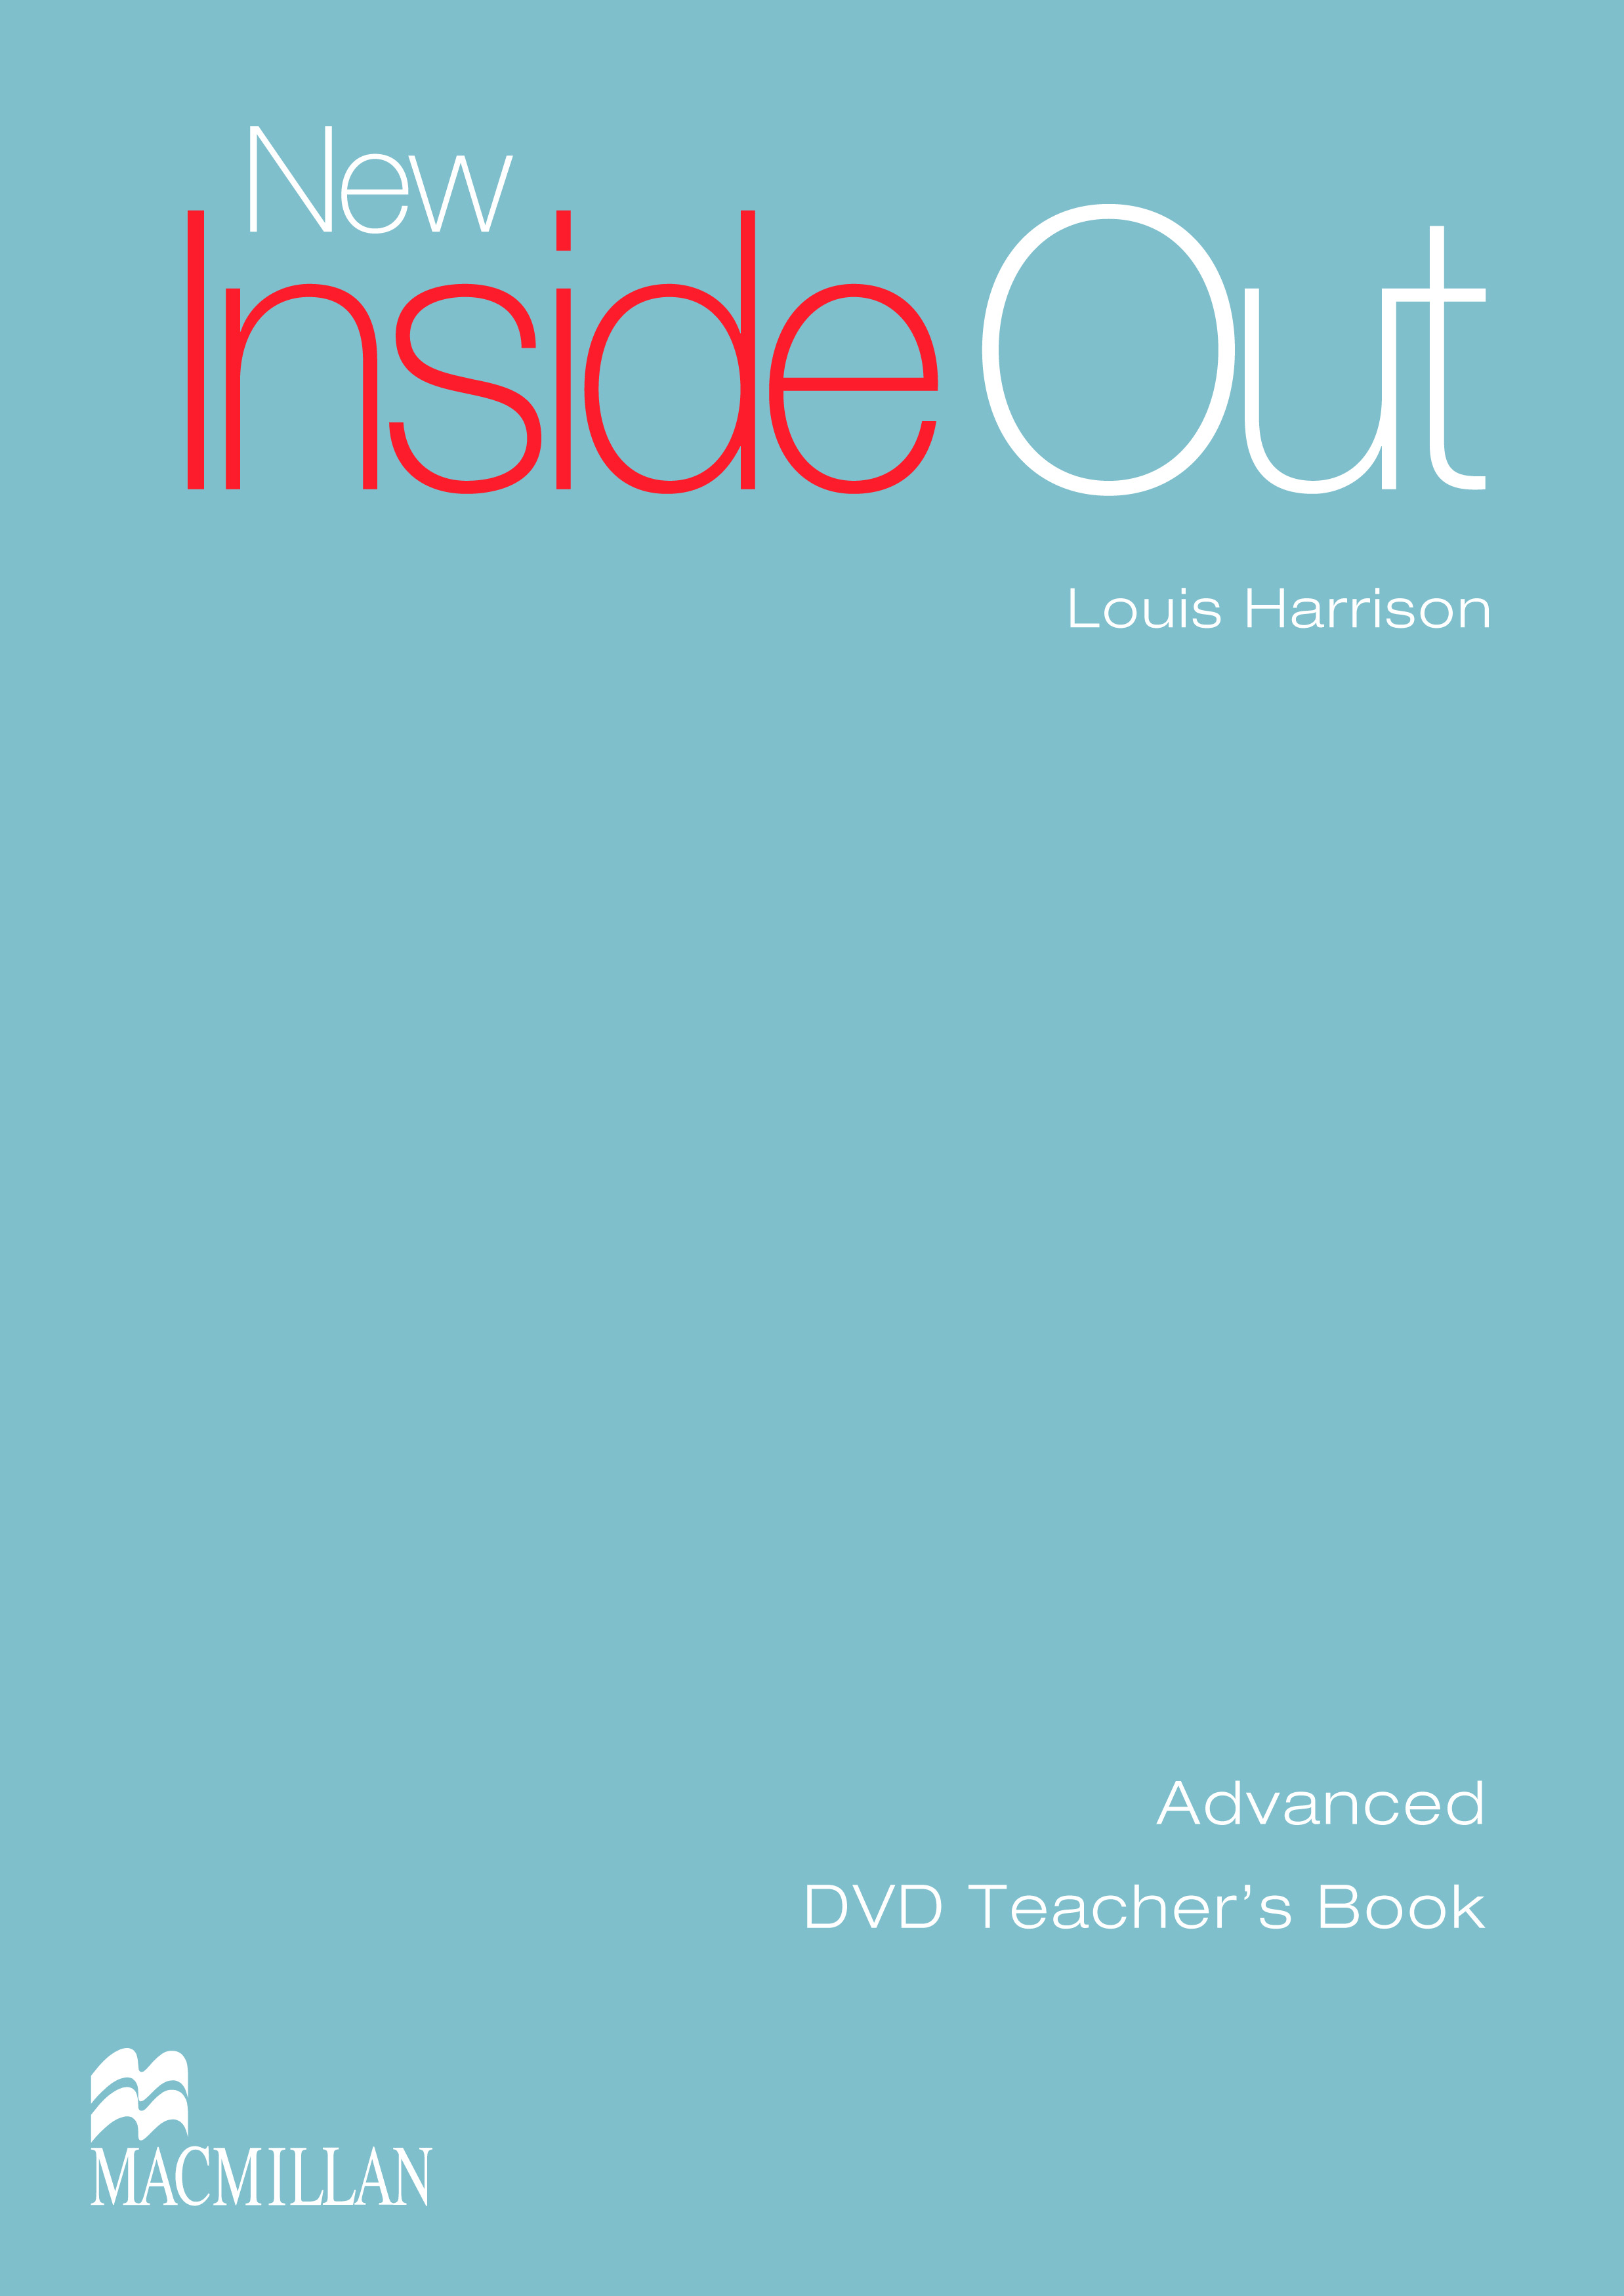 New Inside Out Advanced DVD Teacher